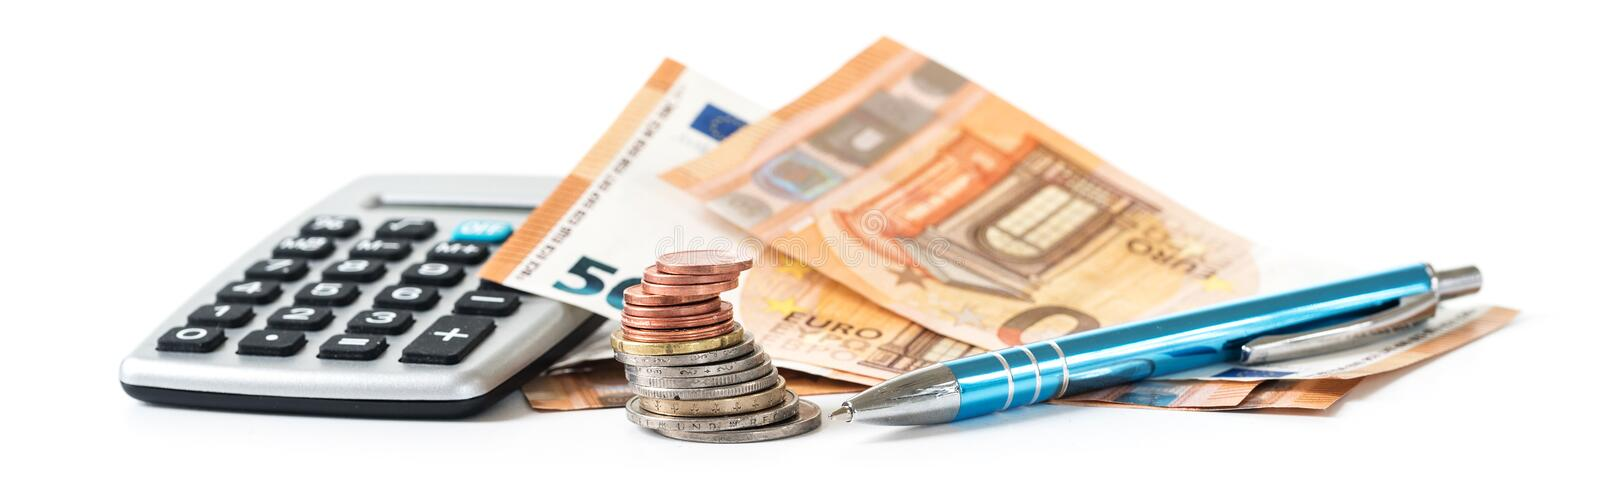 Financial planning with coins and euro banknotes, a calculator a royalty free stock photos